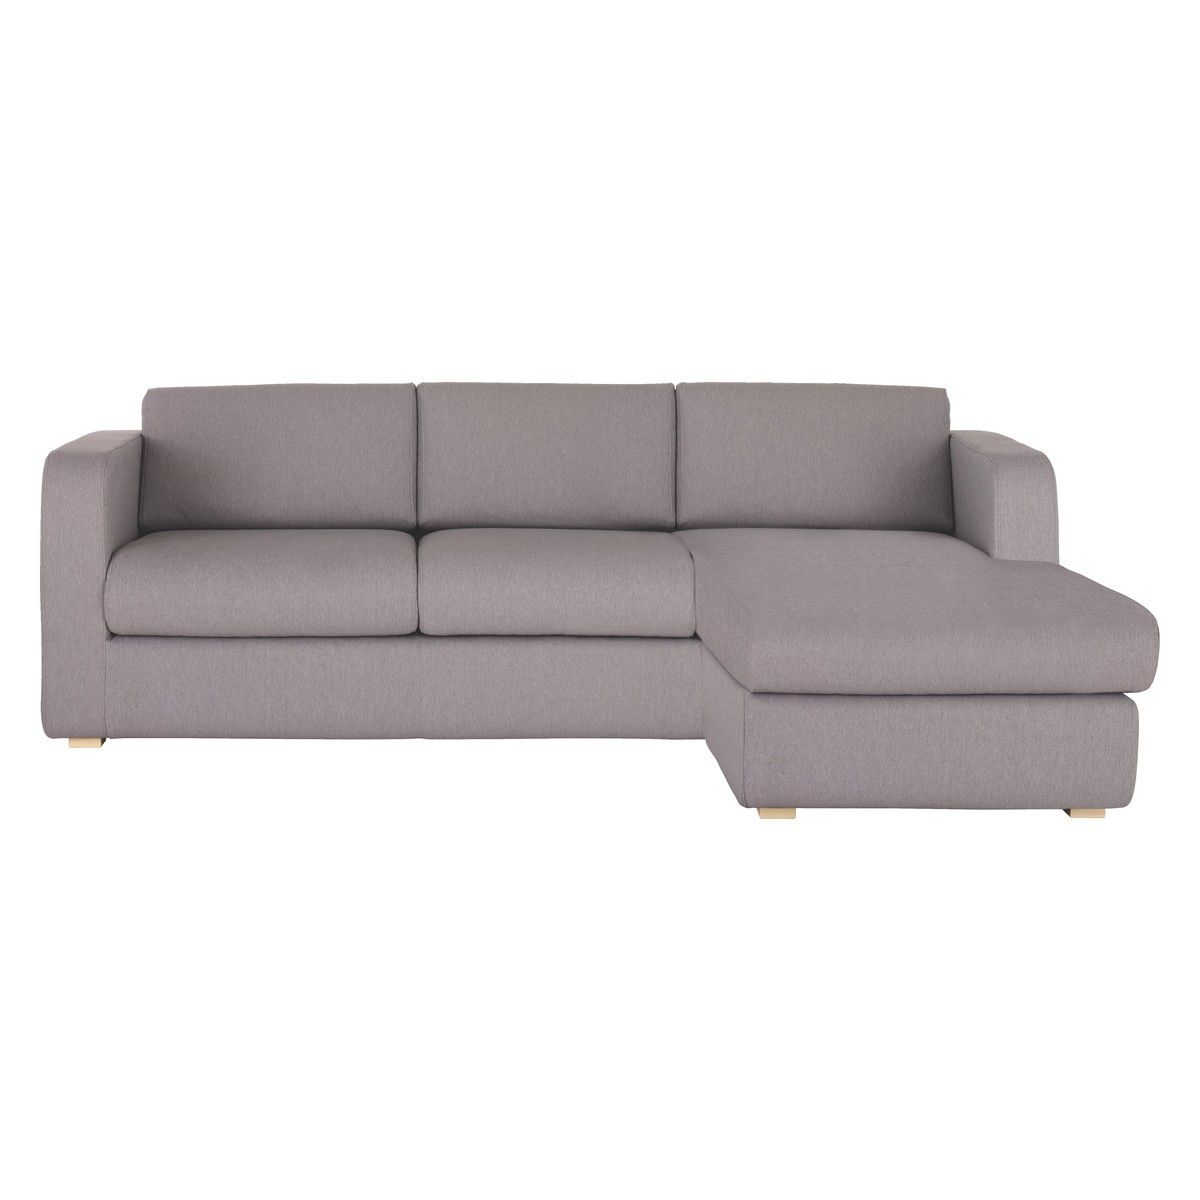 Porto Grey Fabric Reversible Chaise Sofa Bed Chaise Sofa Sofa